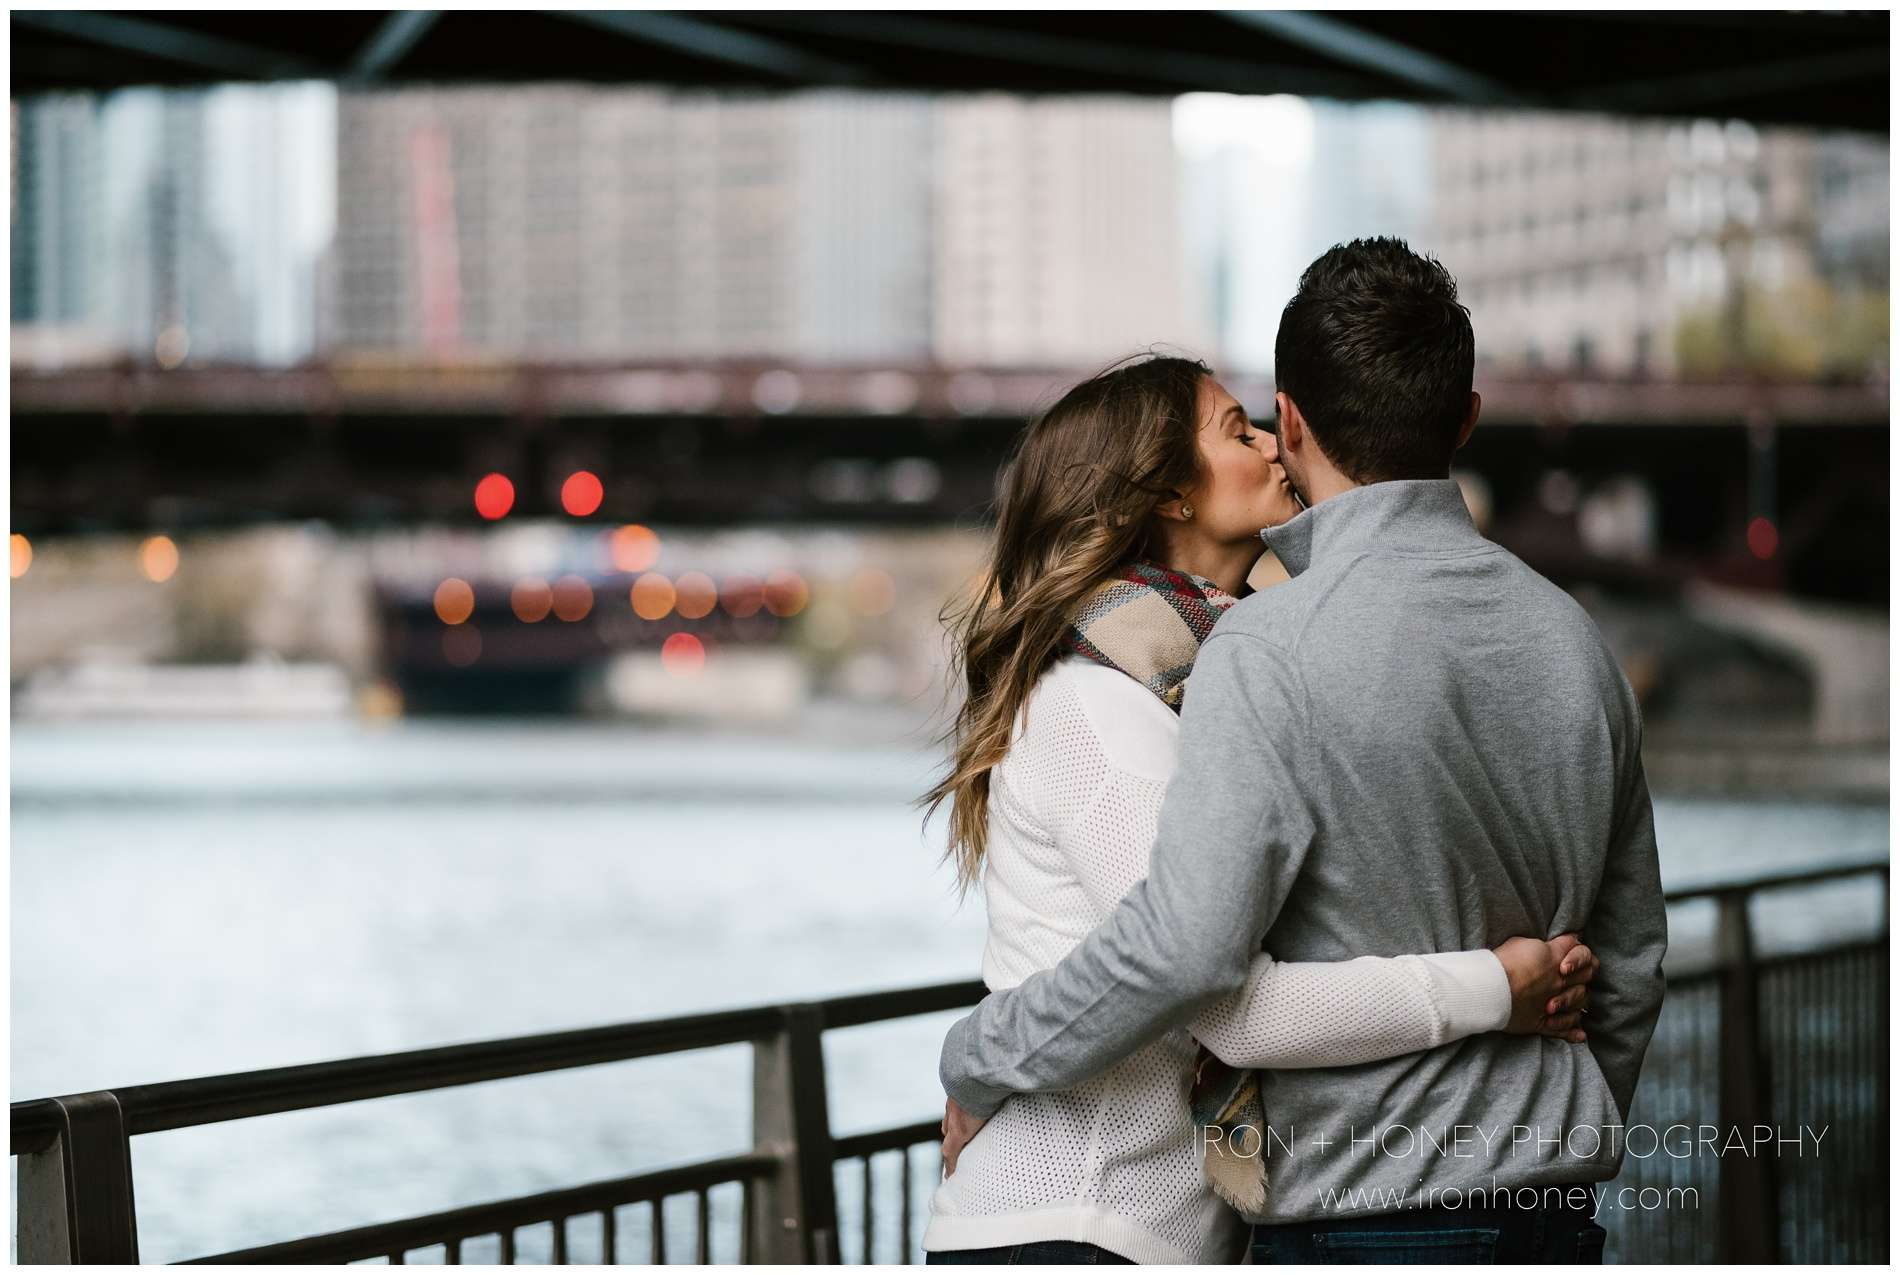 chicago riverwalk engagement session, iron and honey, melissa ferrara, chicago engagement photographer, chicago wedding photographer, chicago riverwalk